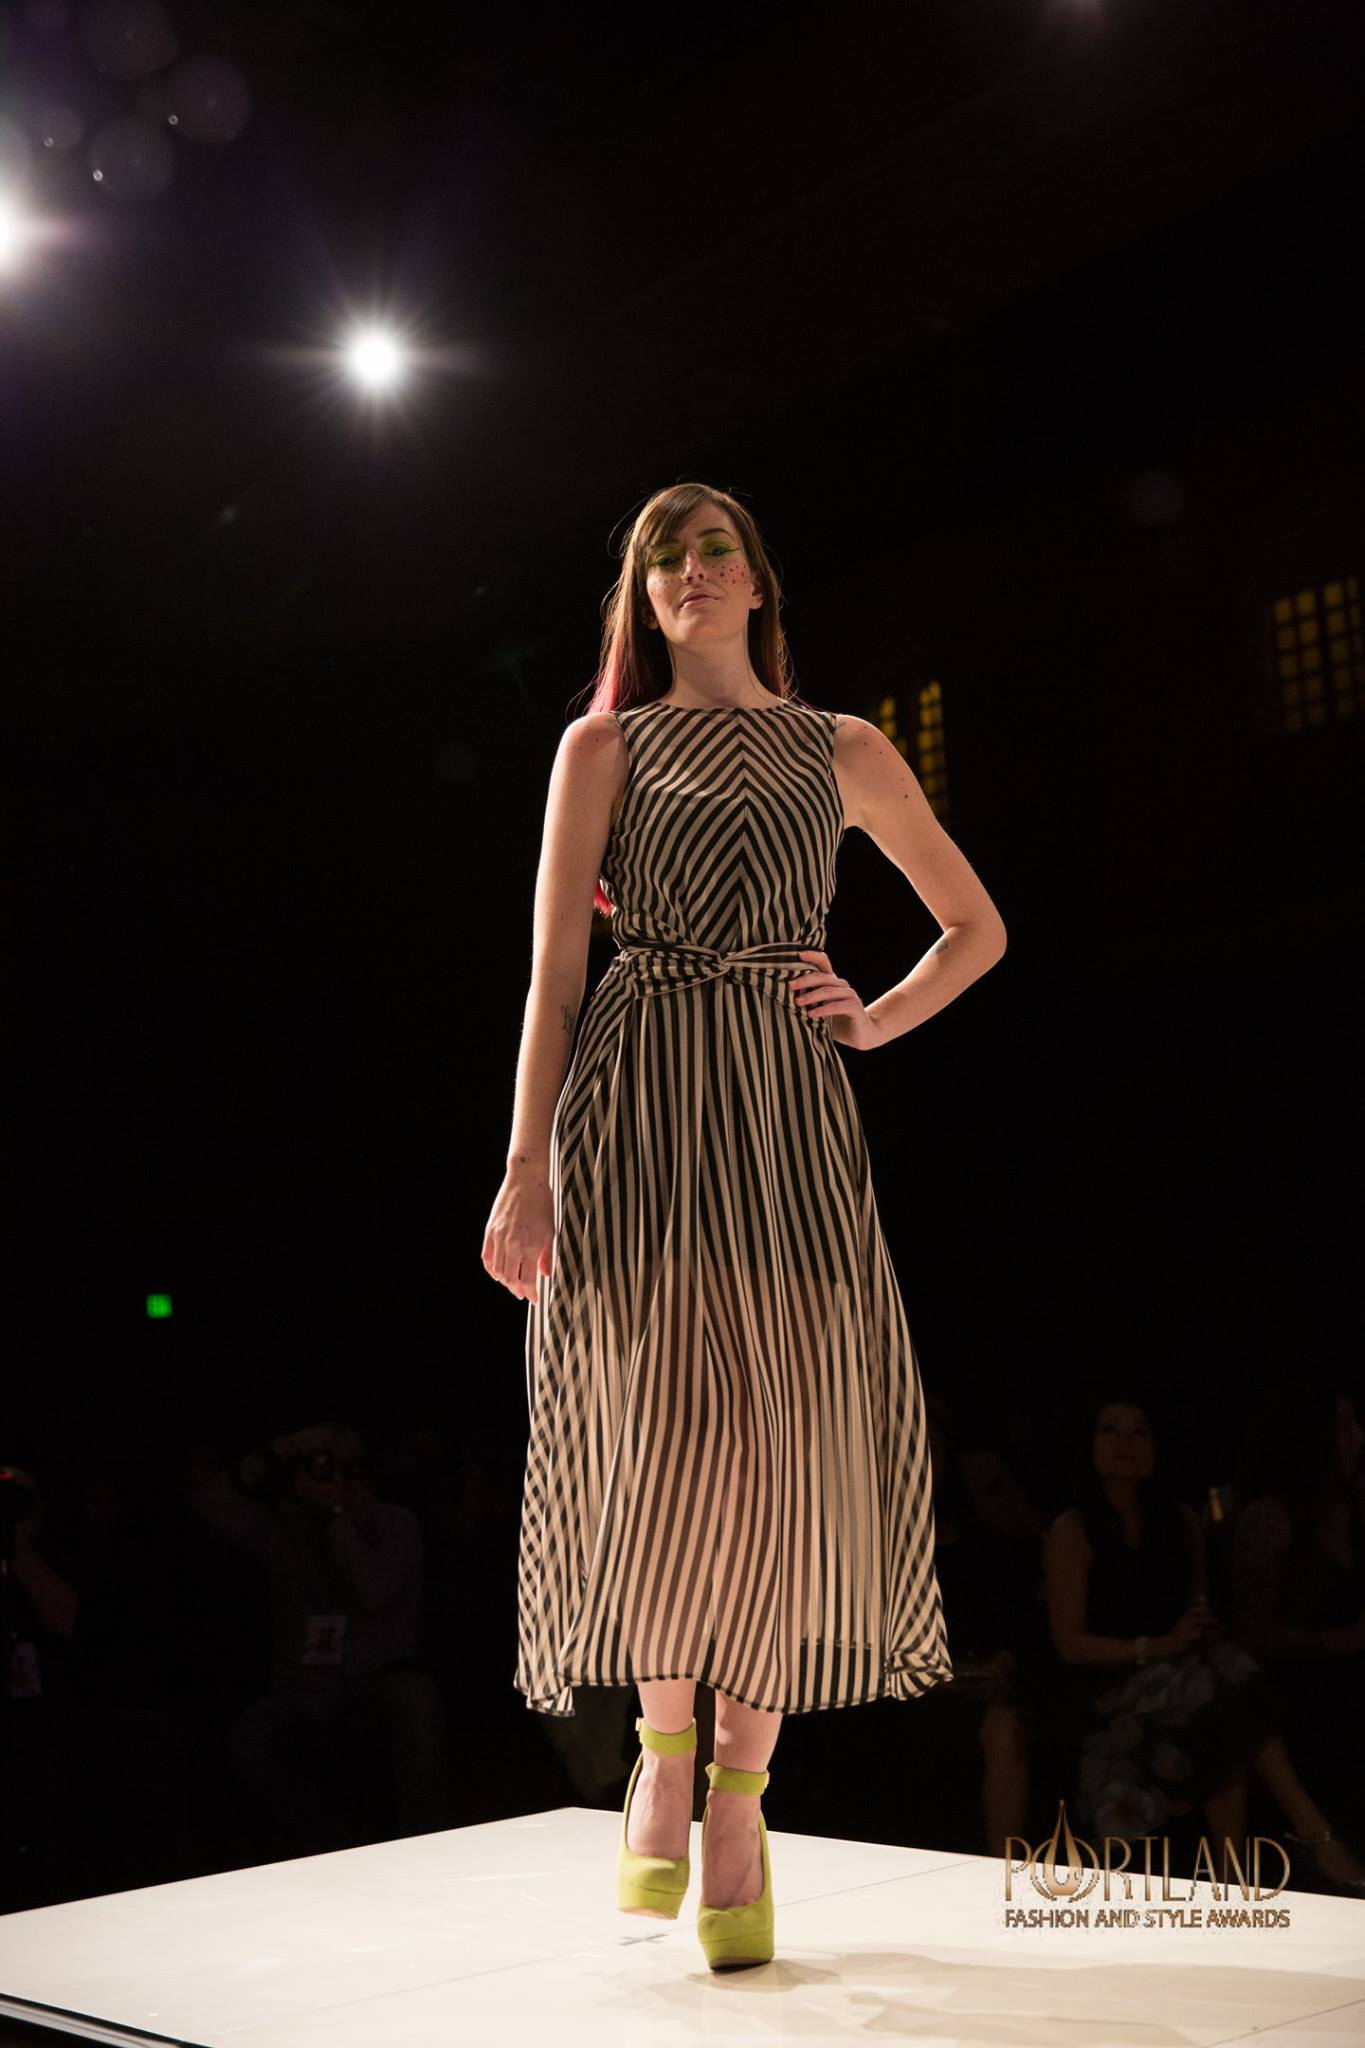 Tom_Lupton_Photography_Fashion_Runway_6.jpg